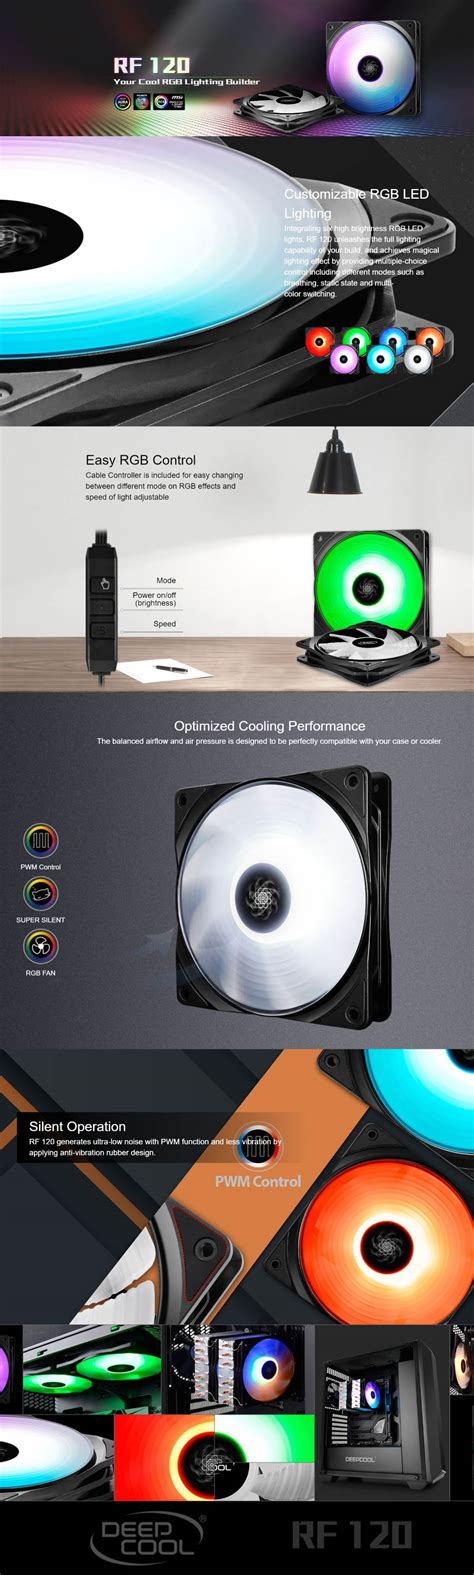 Deepcool Rf120 Rgb deepcool rf120 120mm customisable rgb led fan dp frgb